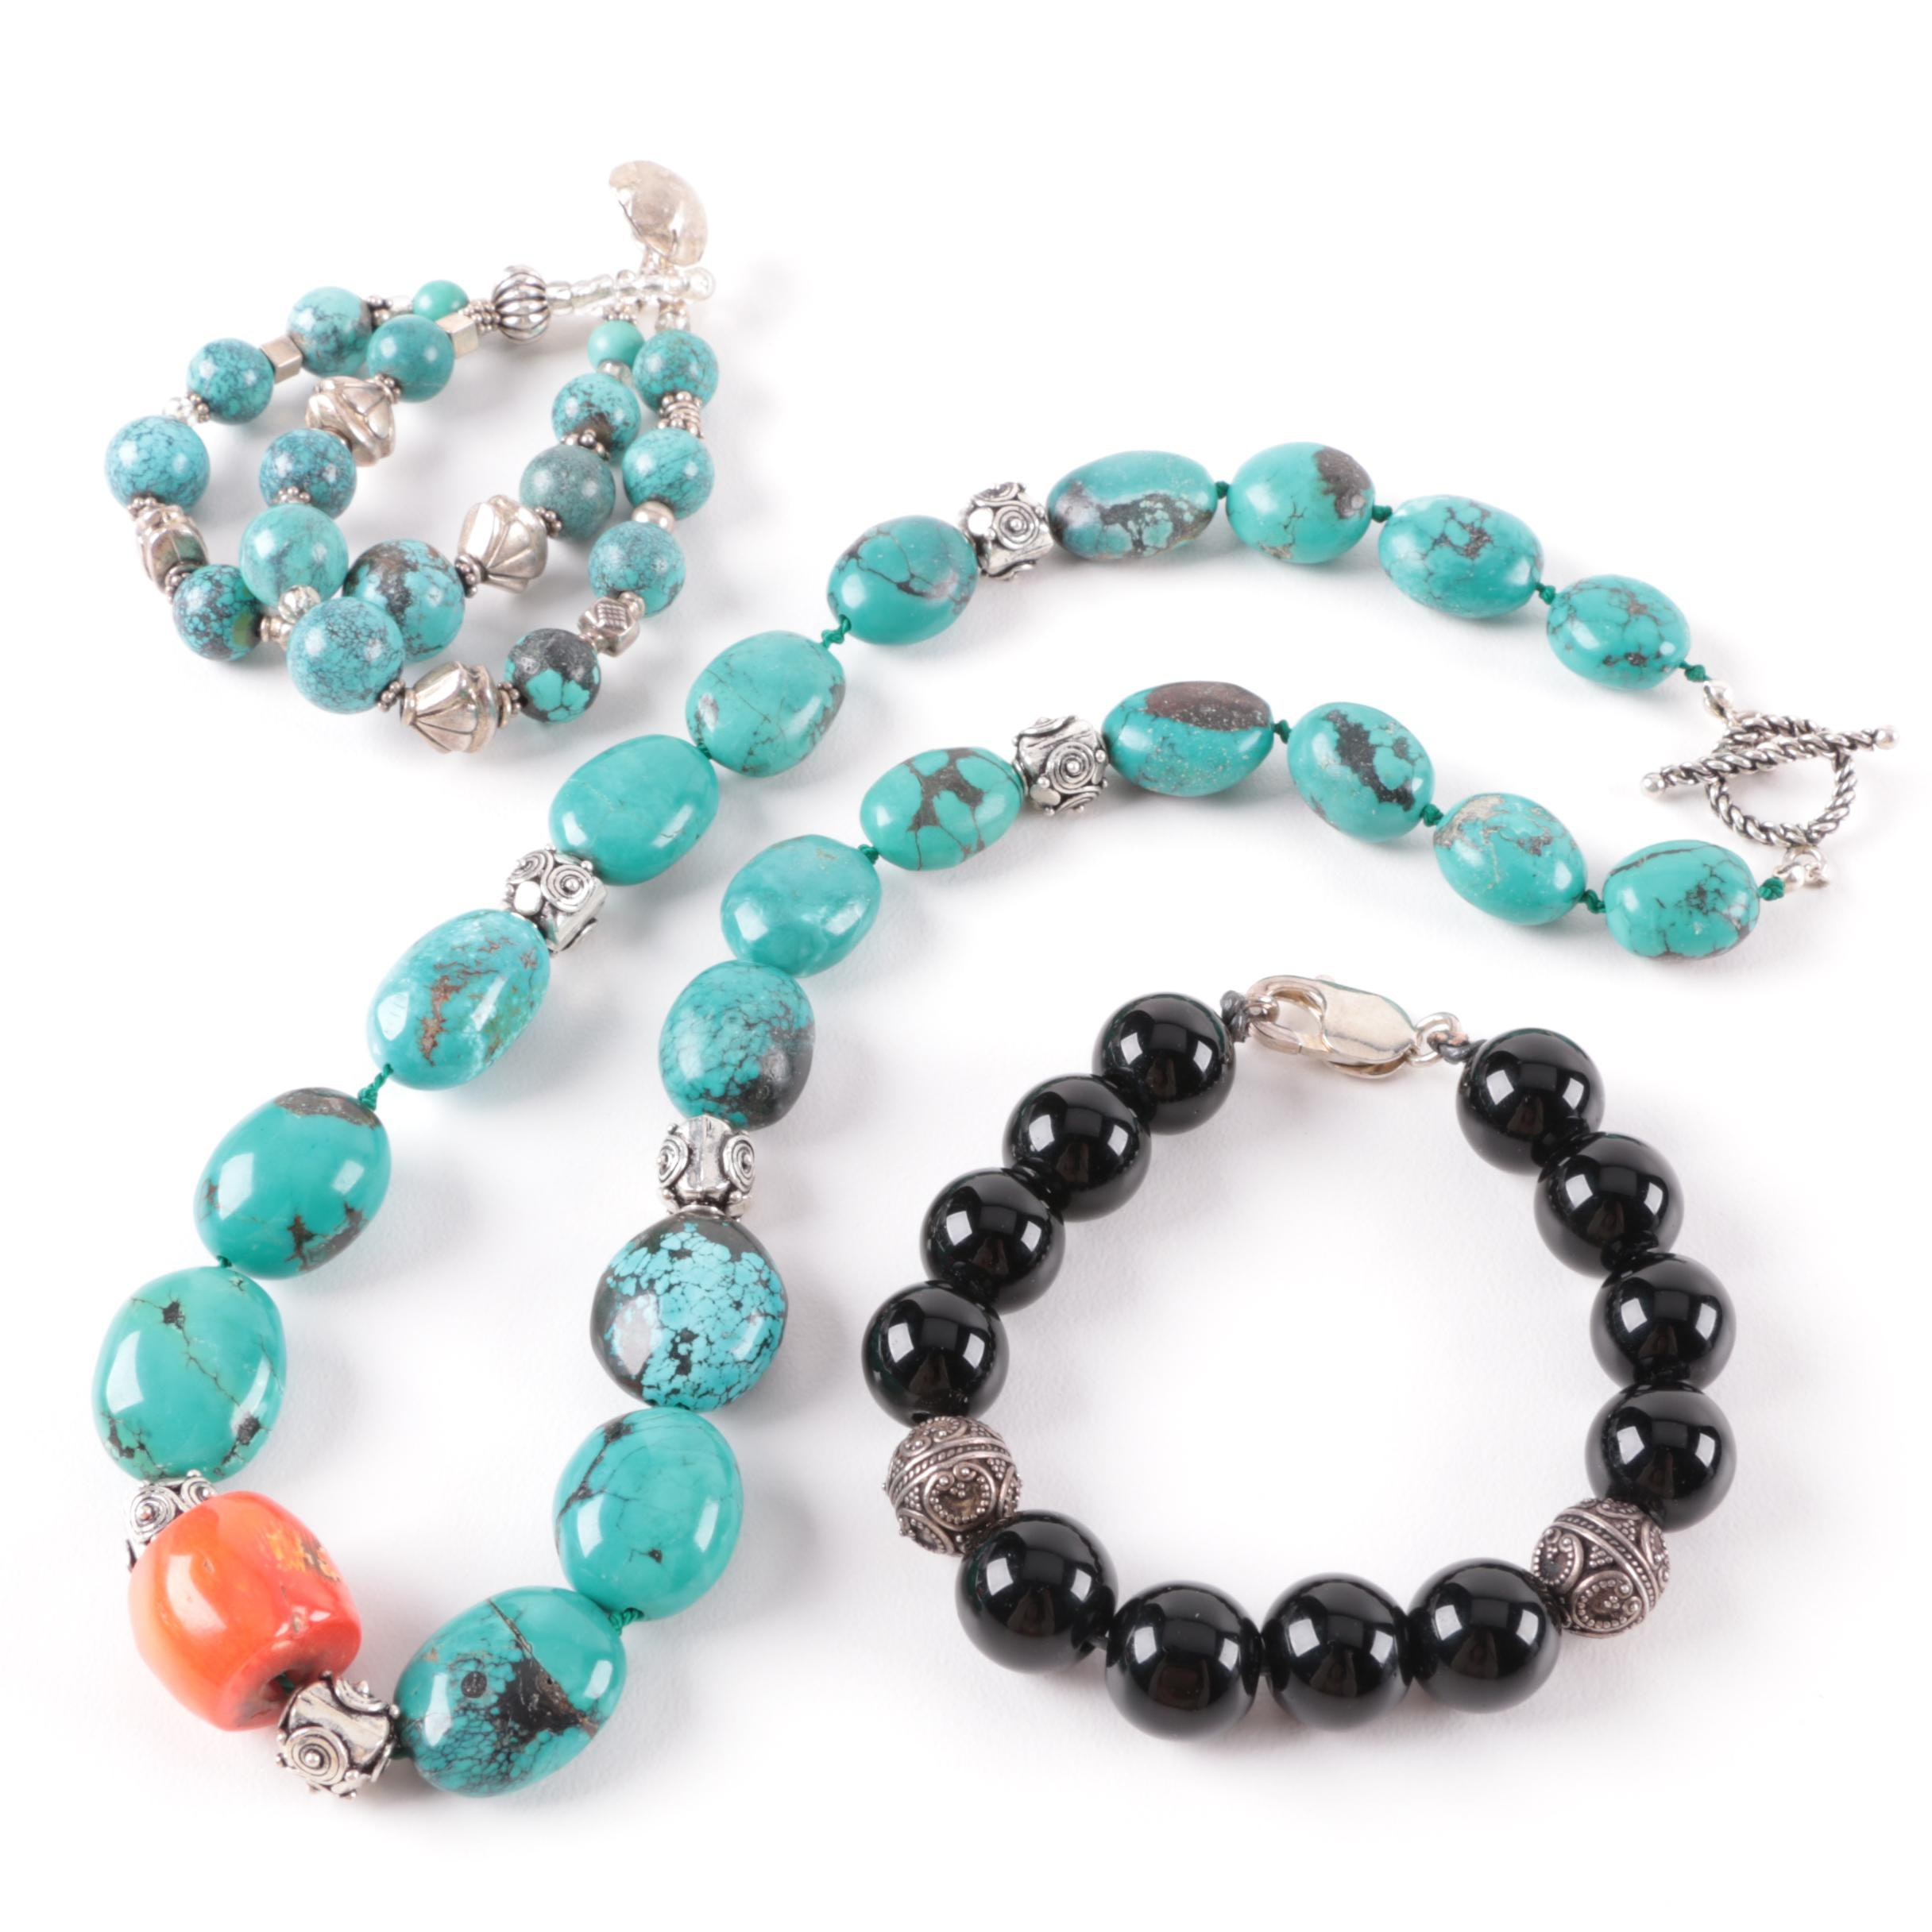 Sterling Silver Necklace and Bracelet Selection Featuring Turquoise and Coral